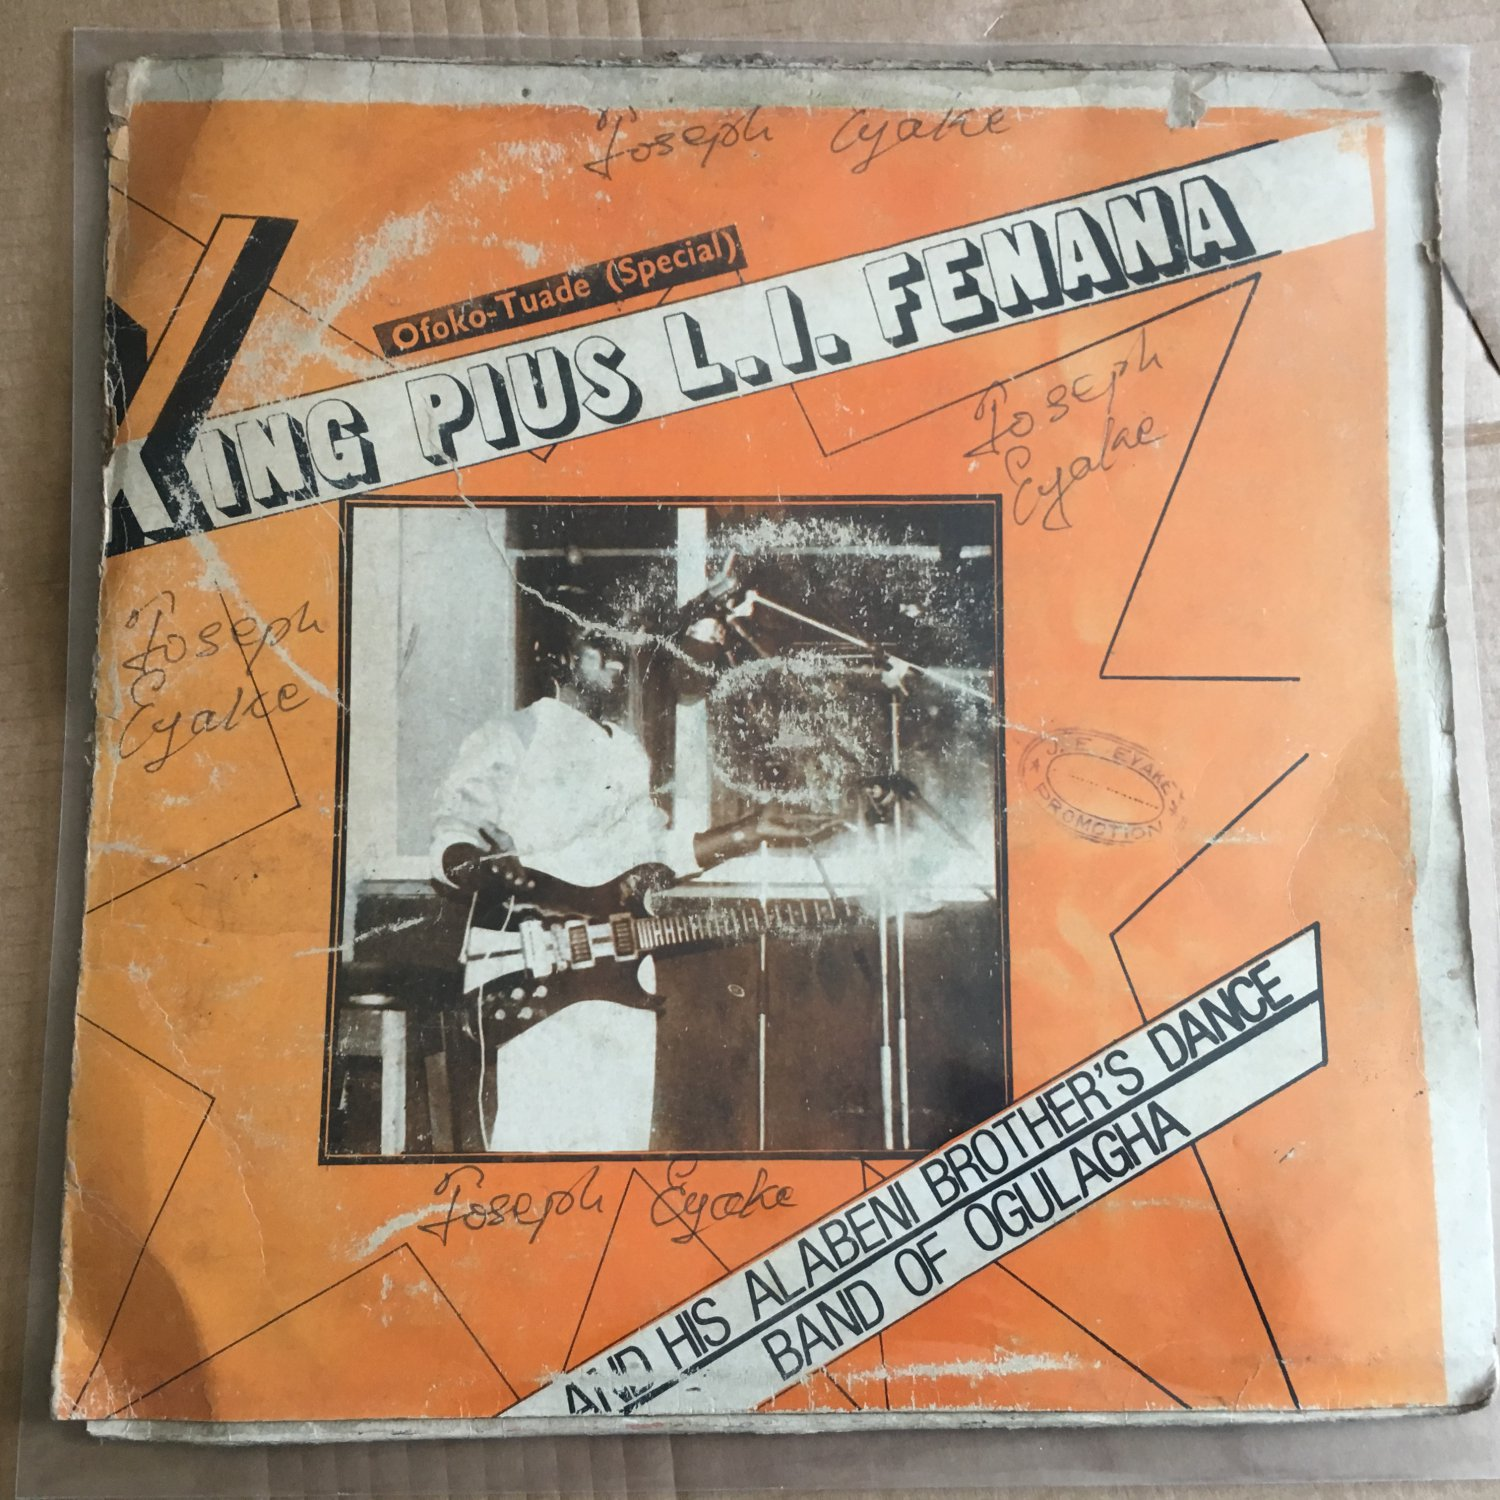 KING PLUS L.I. FENANA LP ofoko truade special NIGERIA IJAW HIGHLIFE mp3 LISTEN